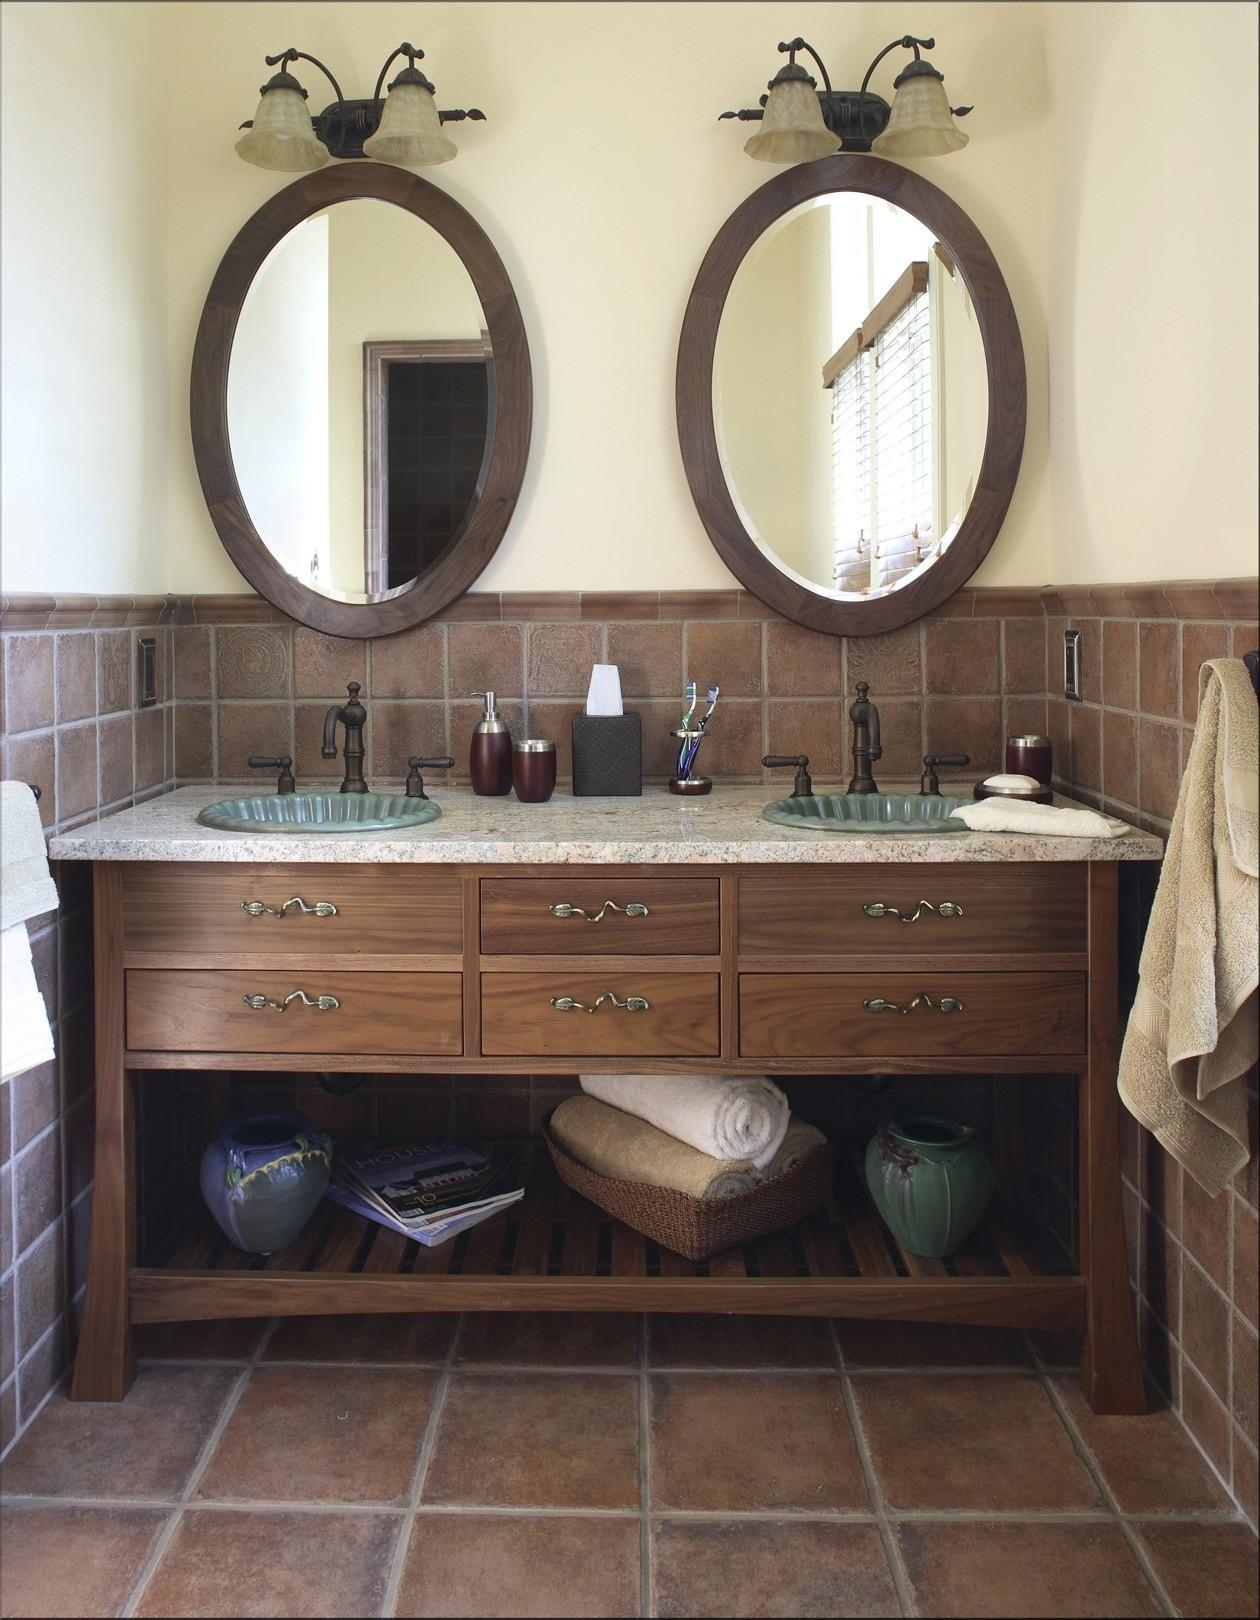 Rustic Oval Bathroom Mirrors | Bathroom Decor Ideas Pertaining To Oval Bath Mirrors (Image 15 of 20)